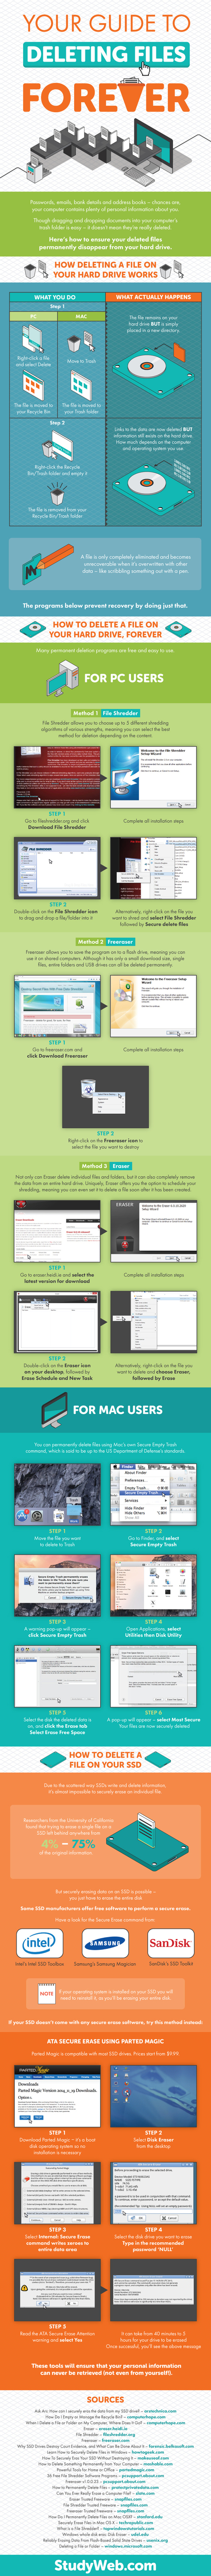 Your Guide to Deleting Files Forever [Infographic] | General Classroom Resources | Scoop.it